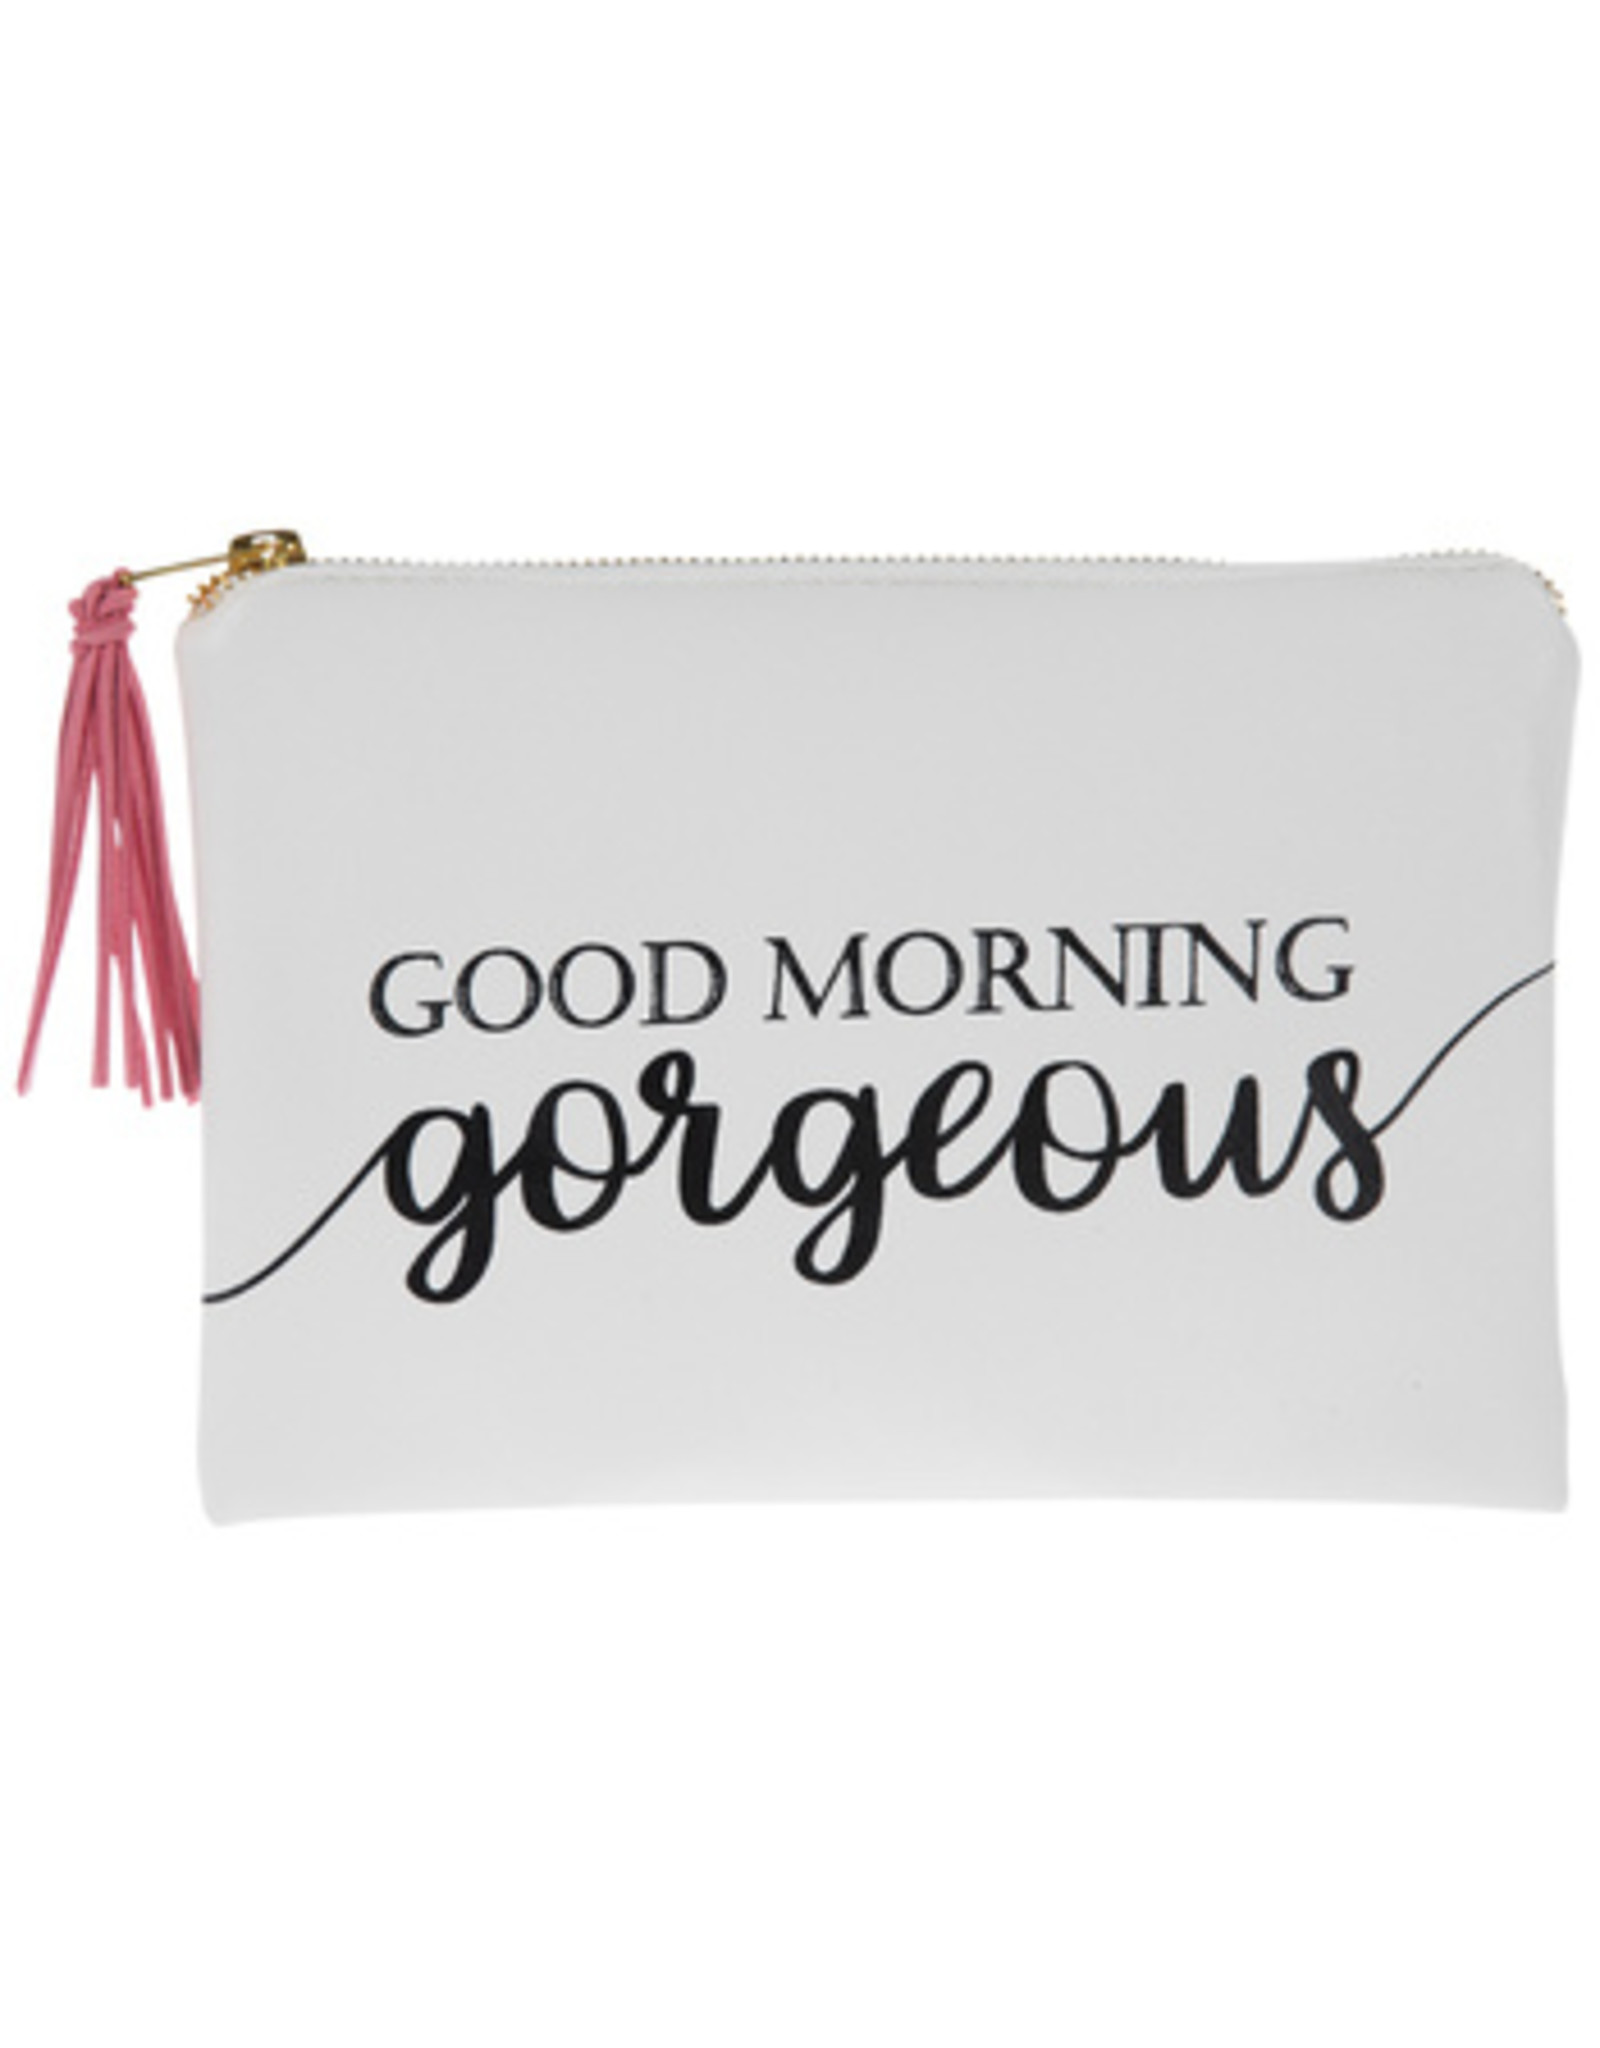 collins Gorgeous Cosmetic Bag